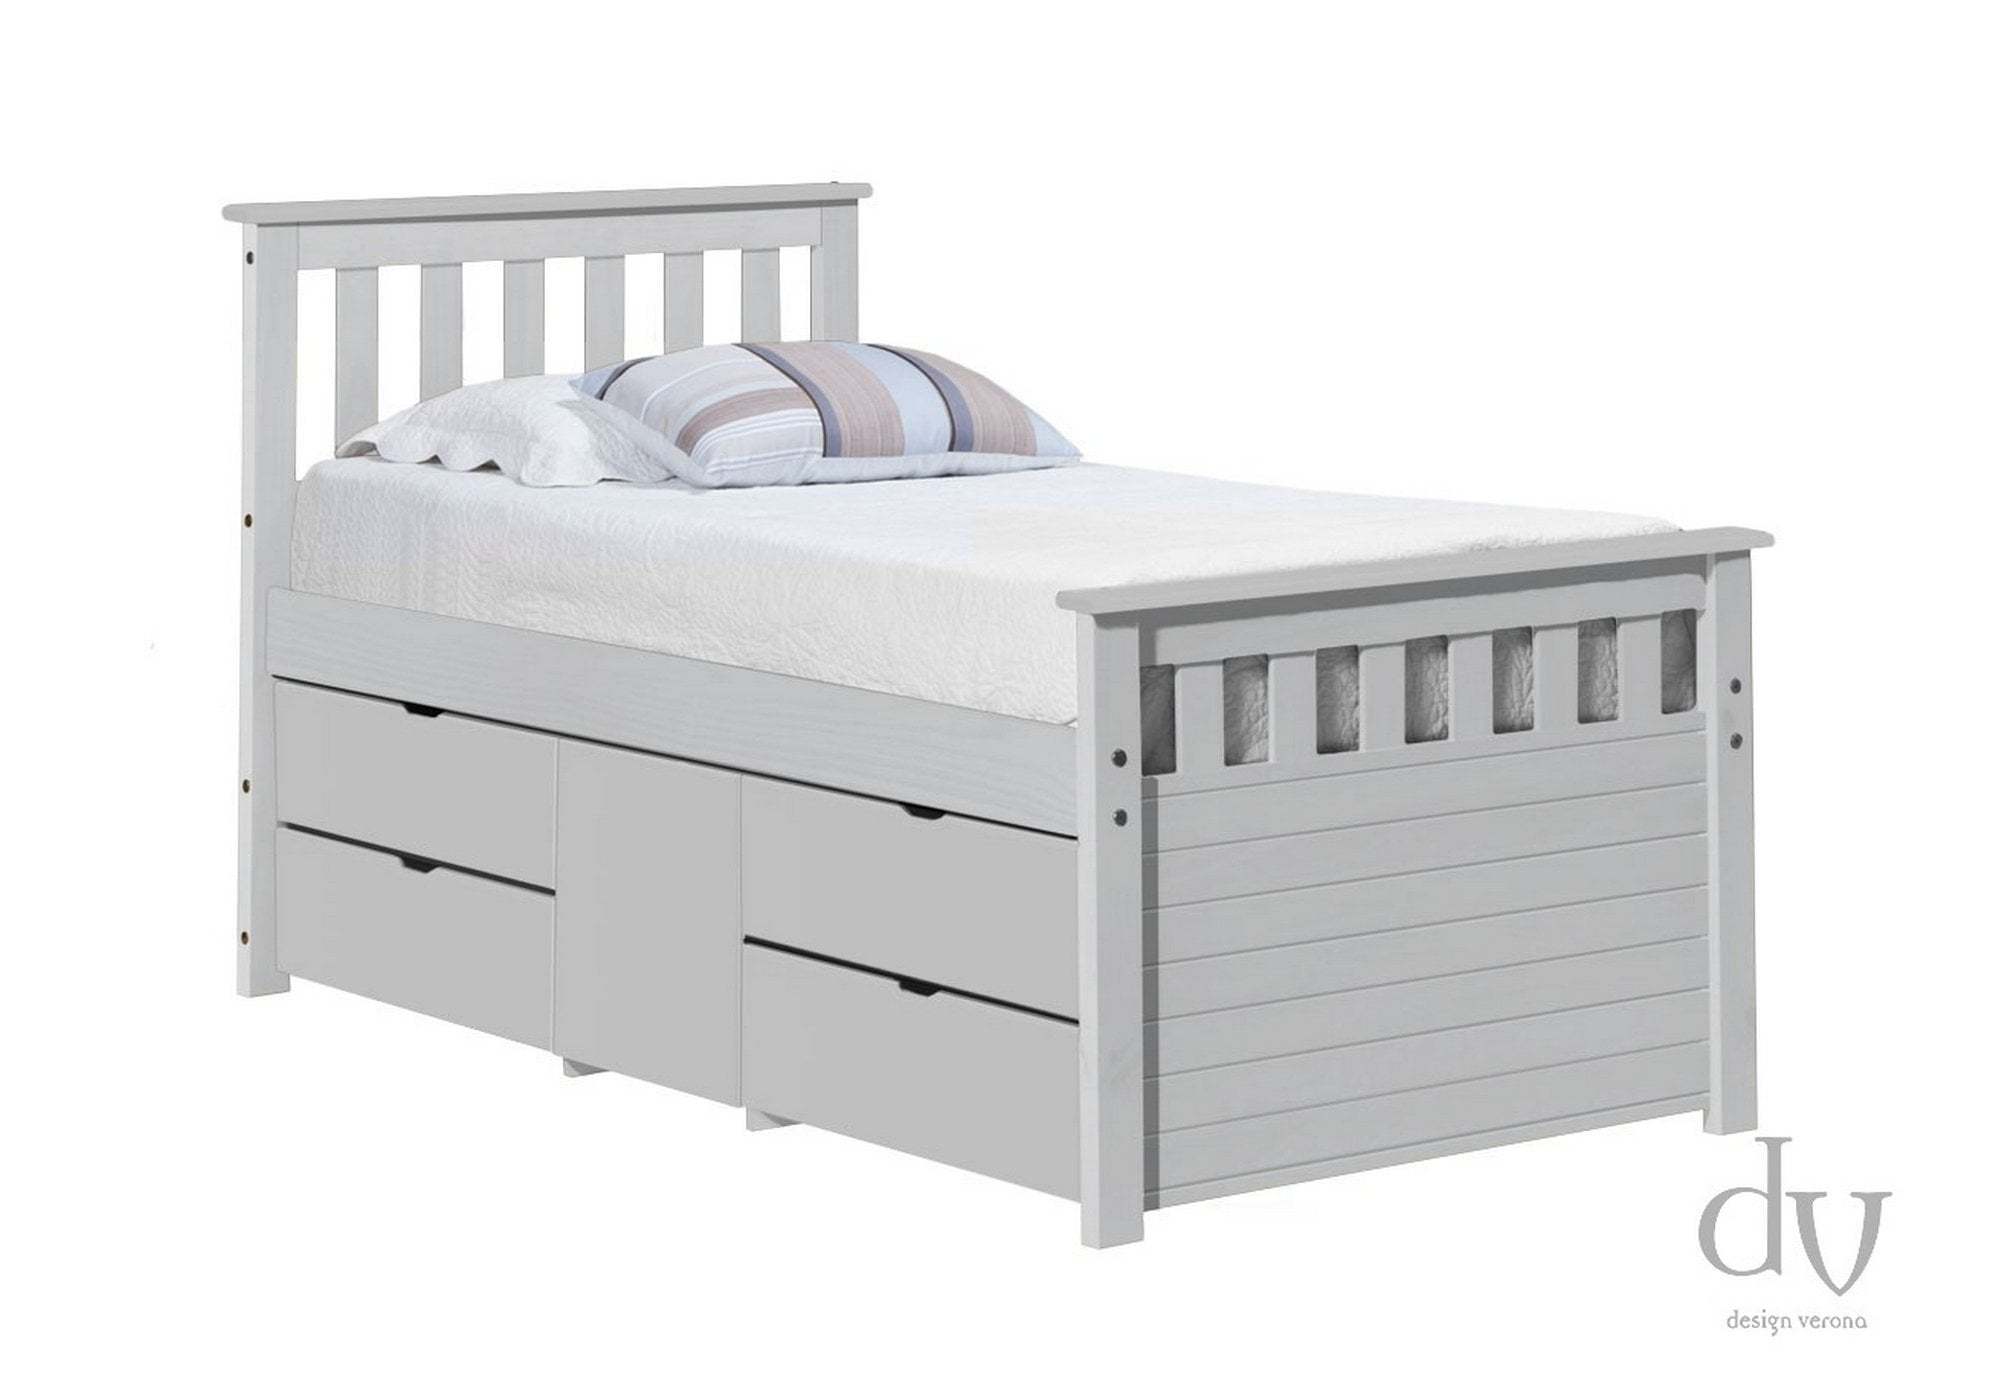 Picture of: Verona Captains Ferrara Storage Bed 3ft White And White Beds From Beds 4 Less Uk